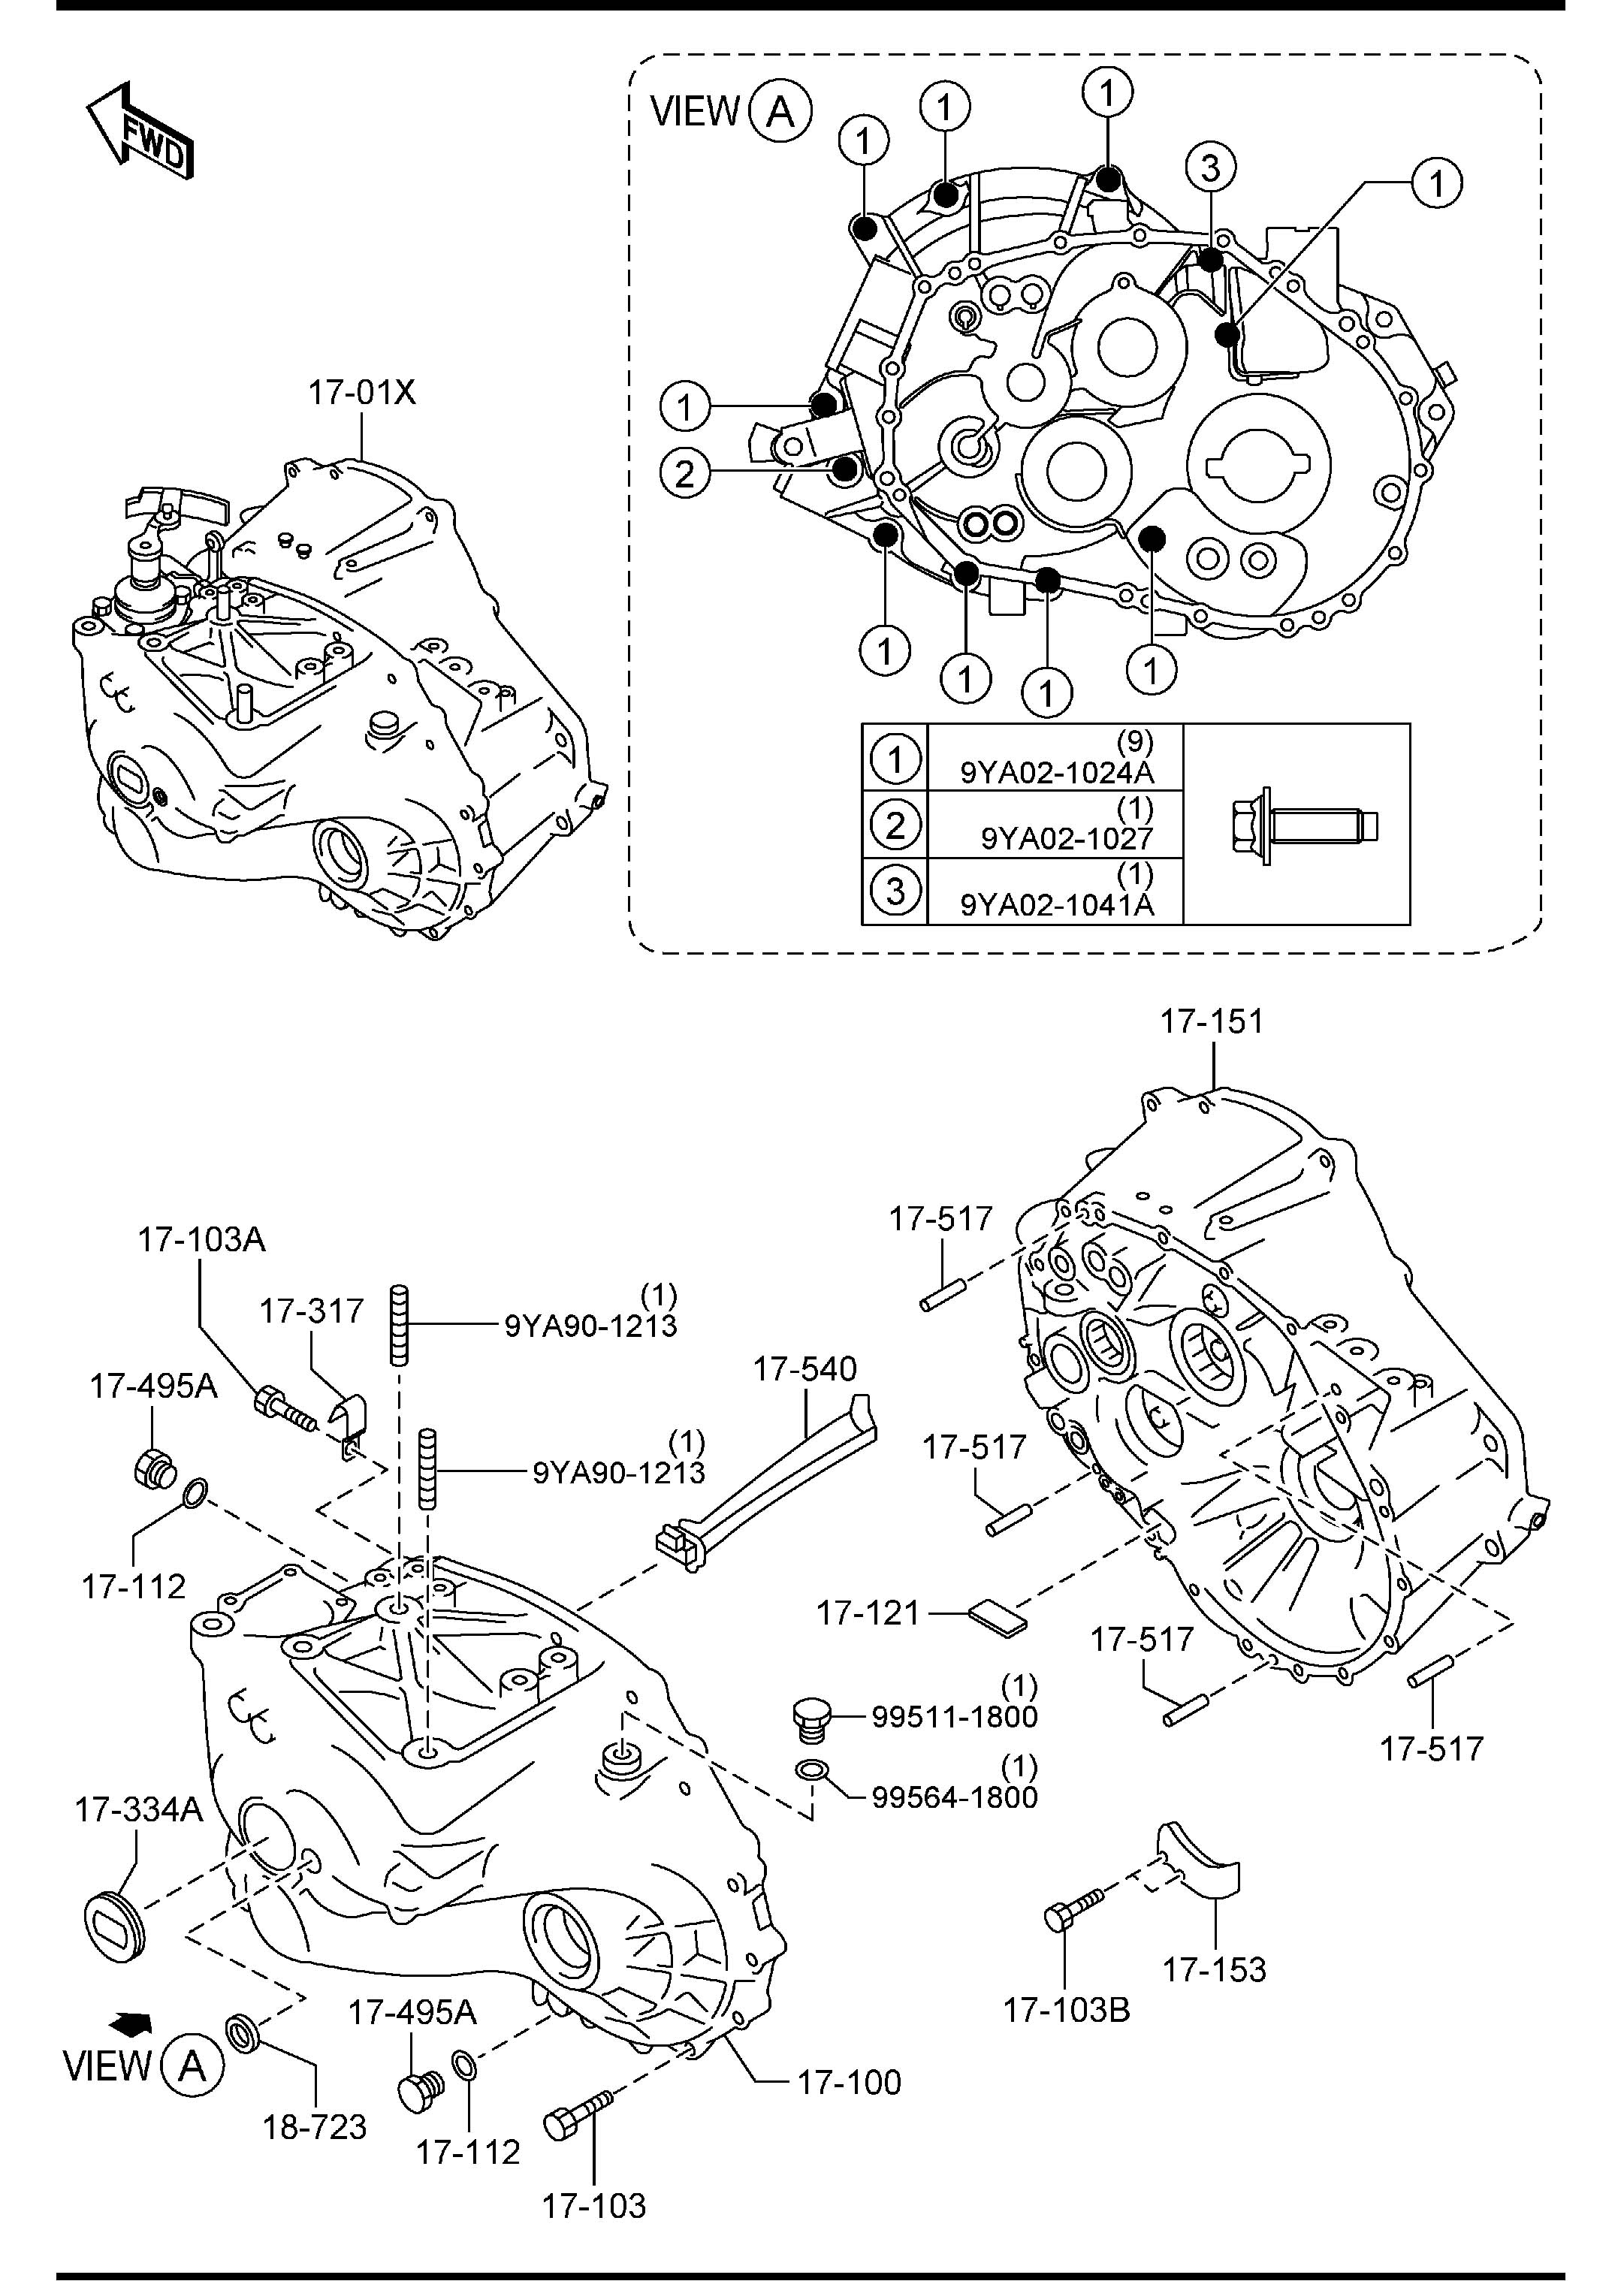 Mazda Transmission Parts Diagrams • Wiring Diagram For Free